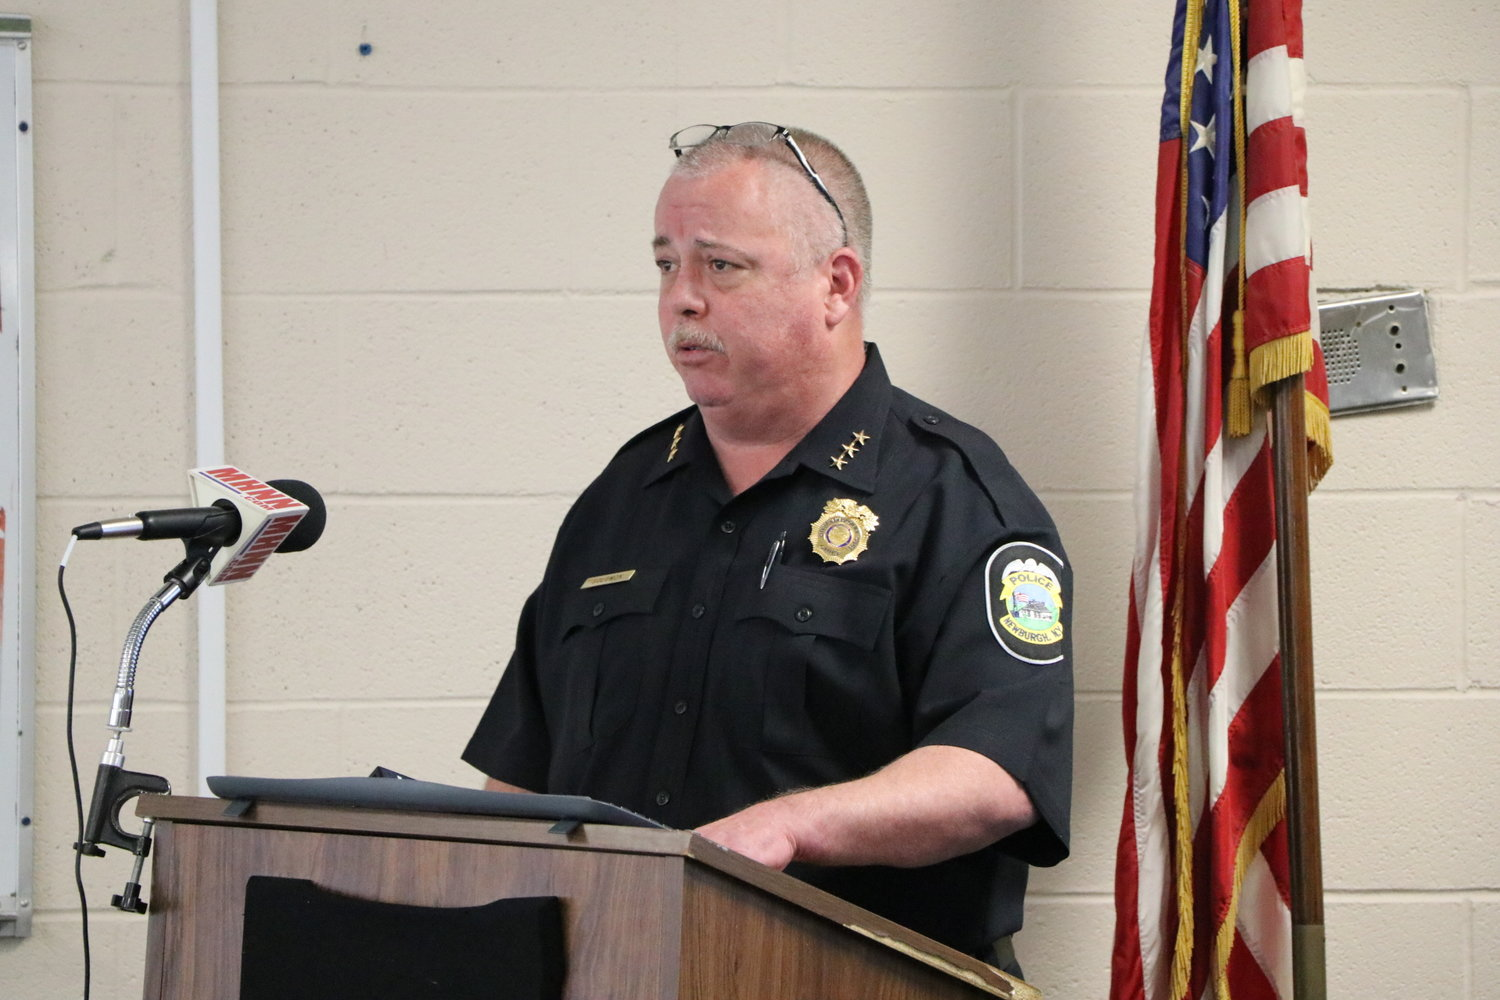 City of Newburgh Police Chief, Doug Solomon speaking at a press conference last week.